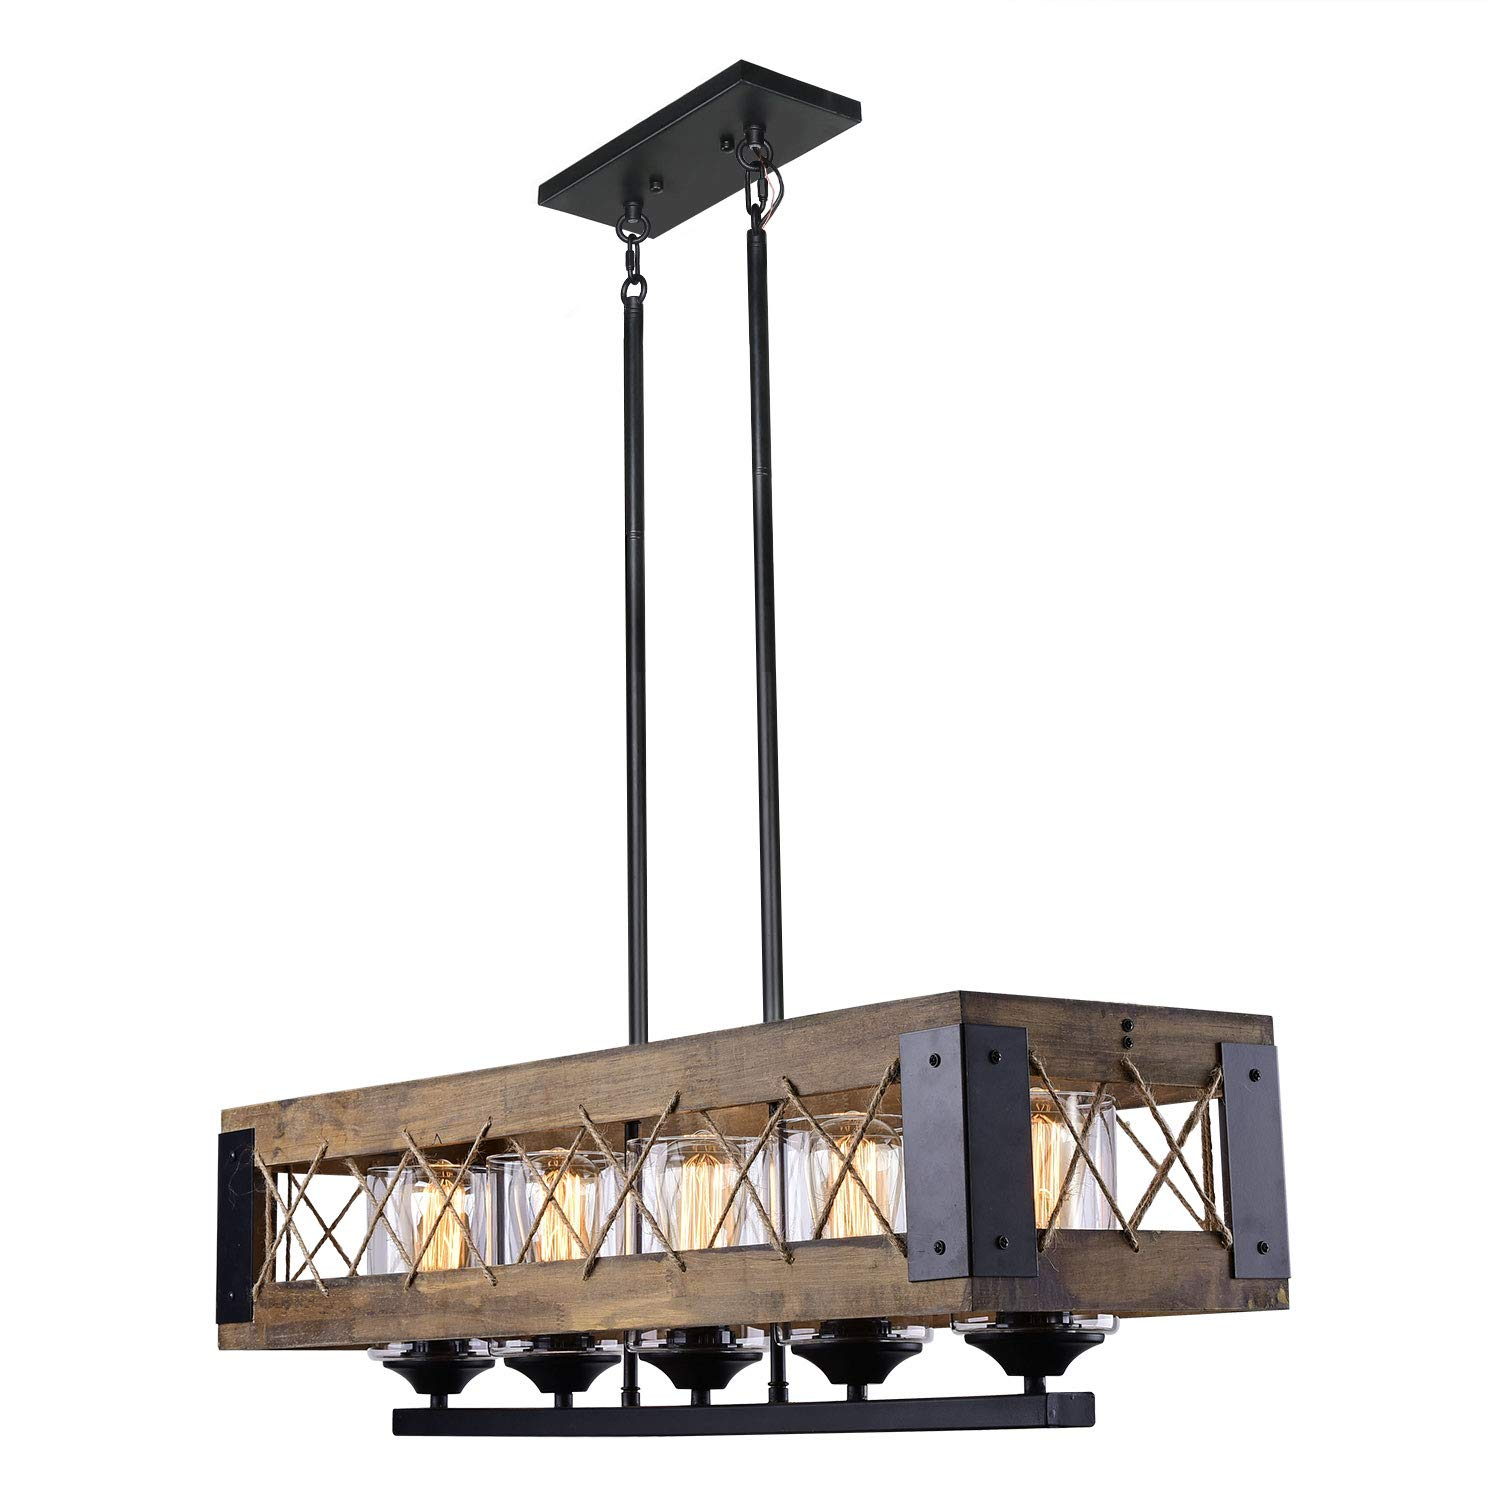 LALUZ 5-Light Farmhouse Kitchen Island Lighting Wood Chandeliers for Dining Rooms, A03145